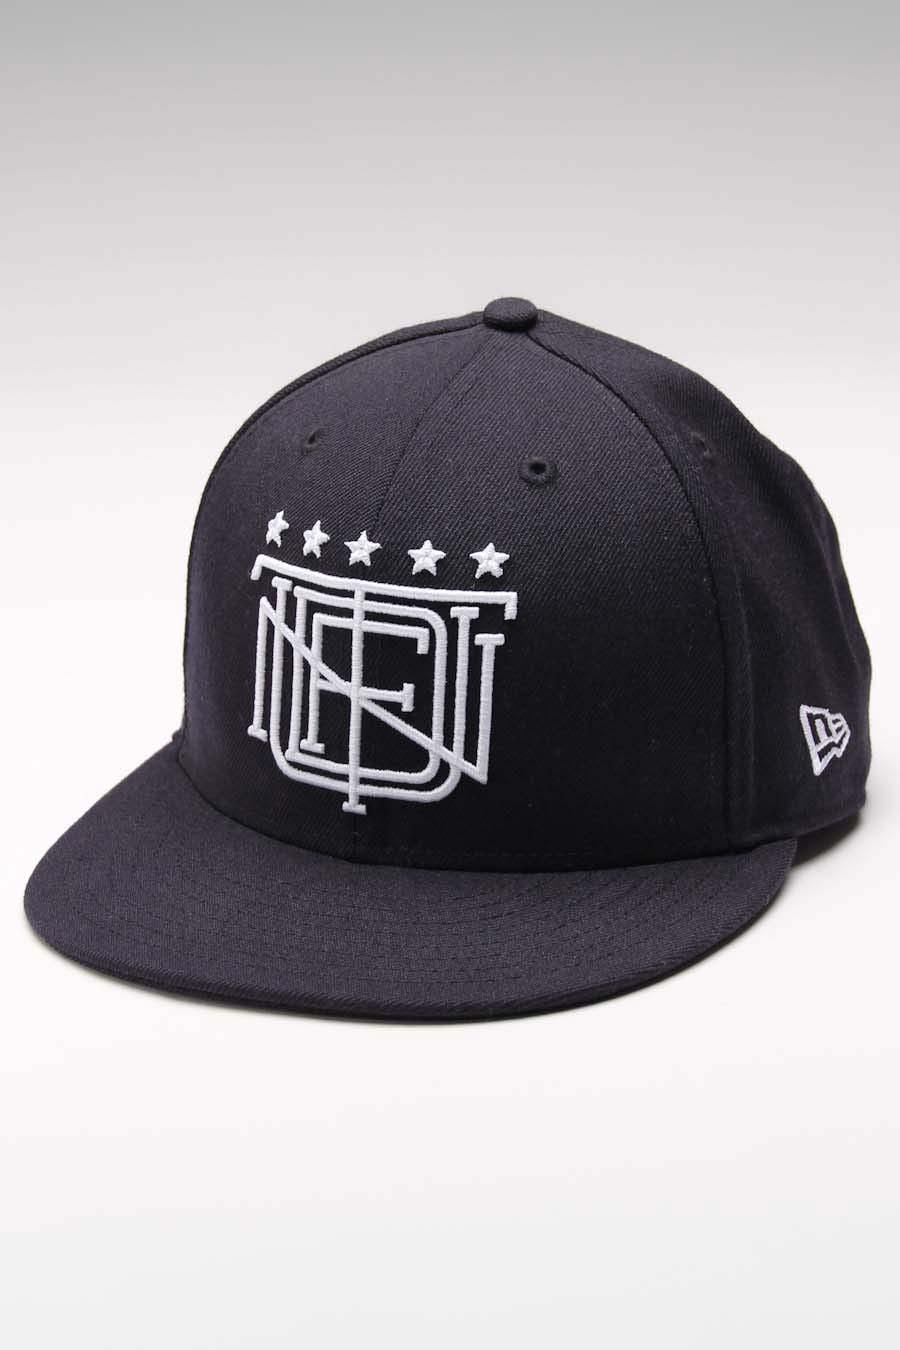 5 Star New Era Ballcap Fitted by UNDFTD  c8f5bd1aa7e4